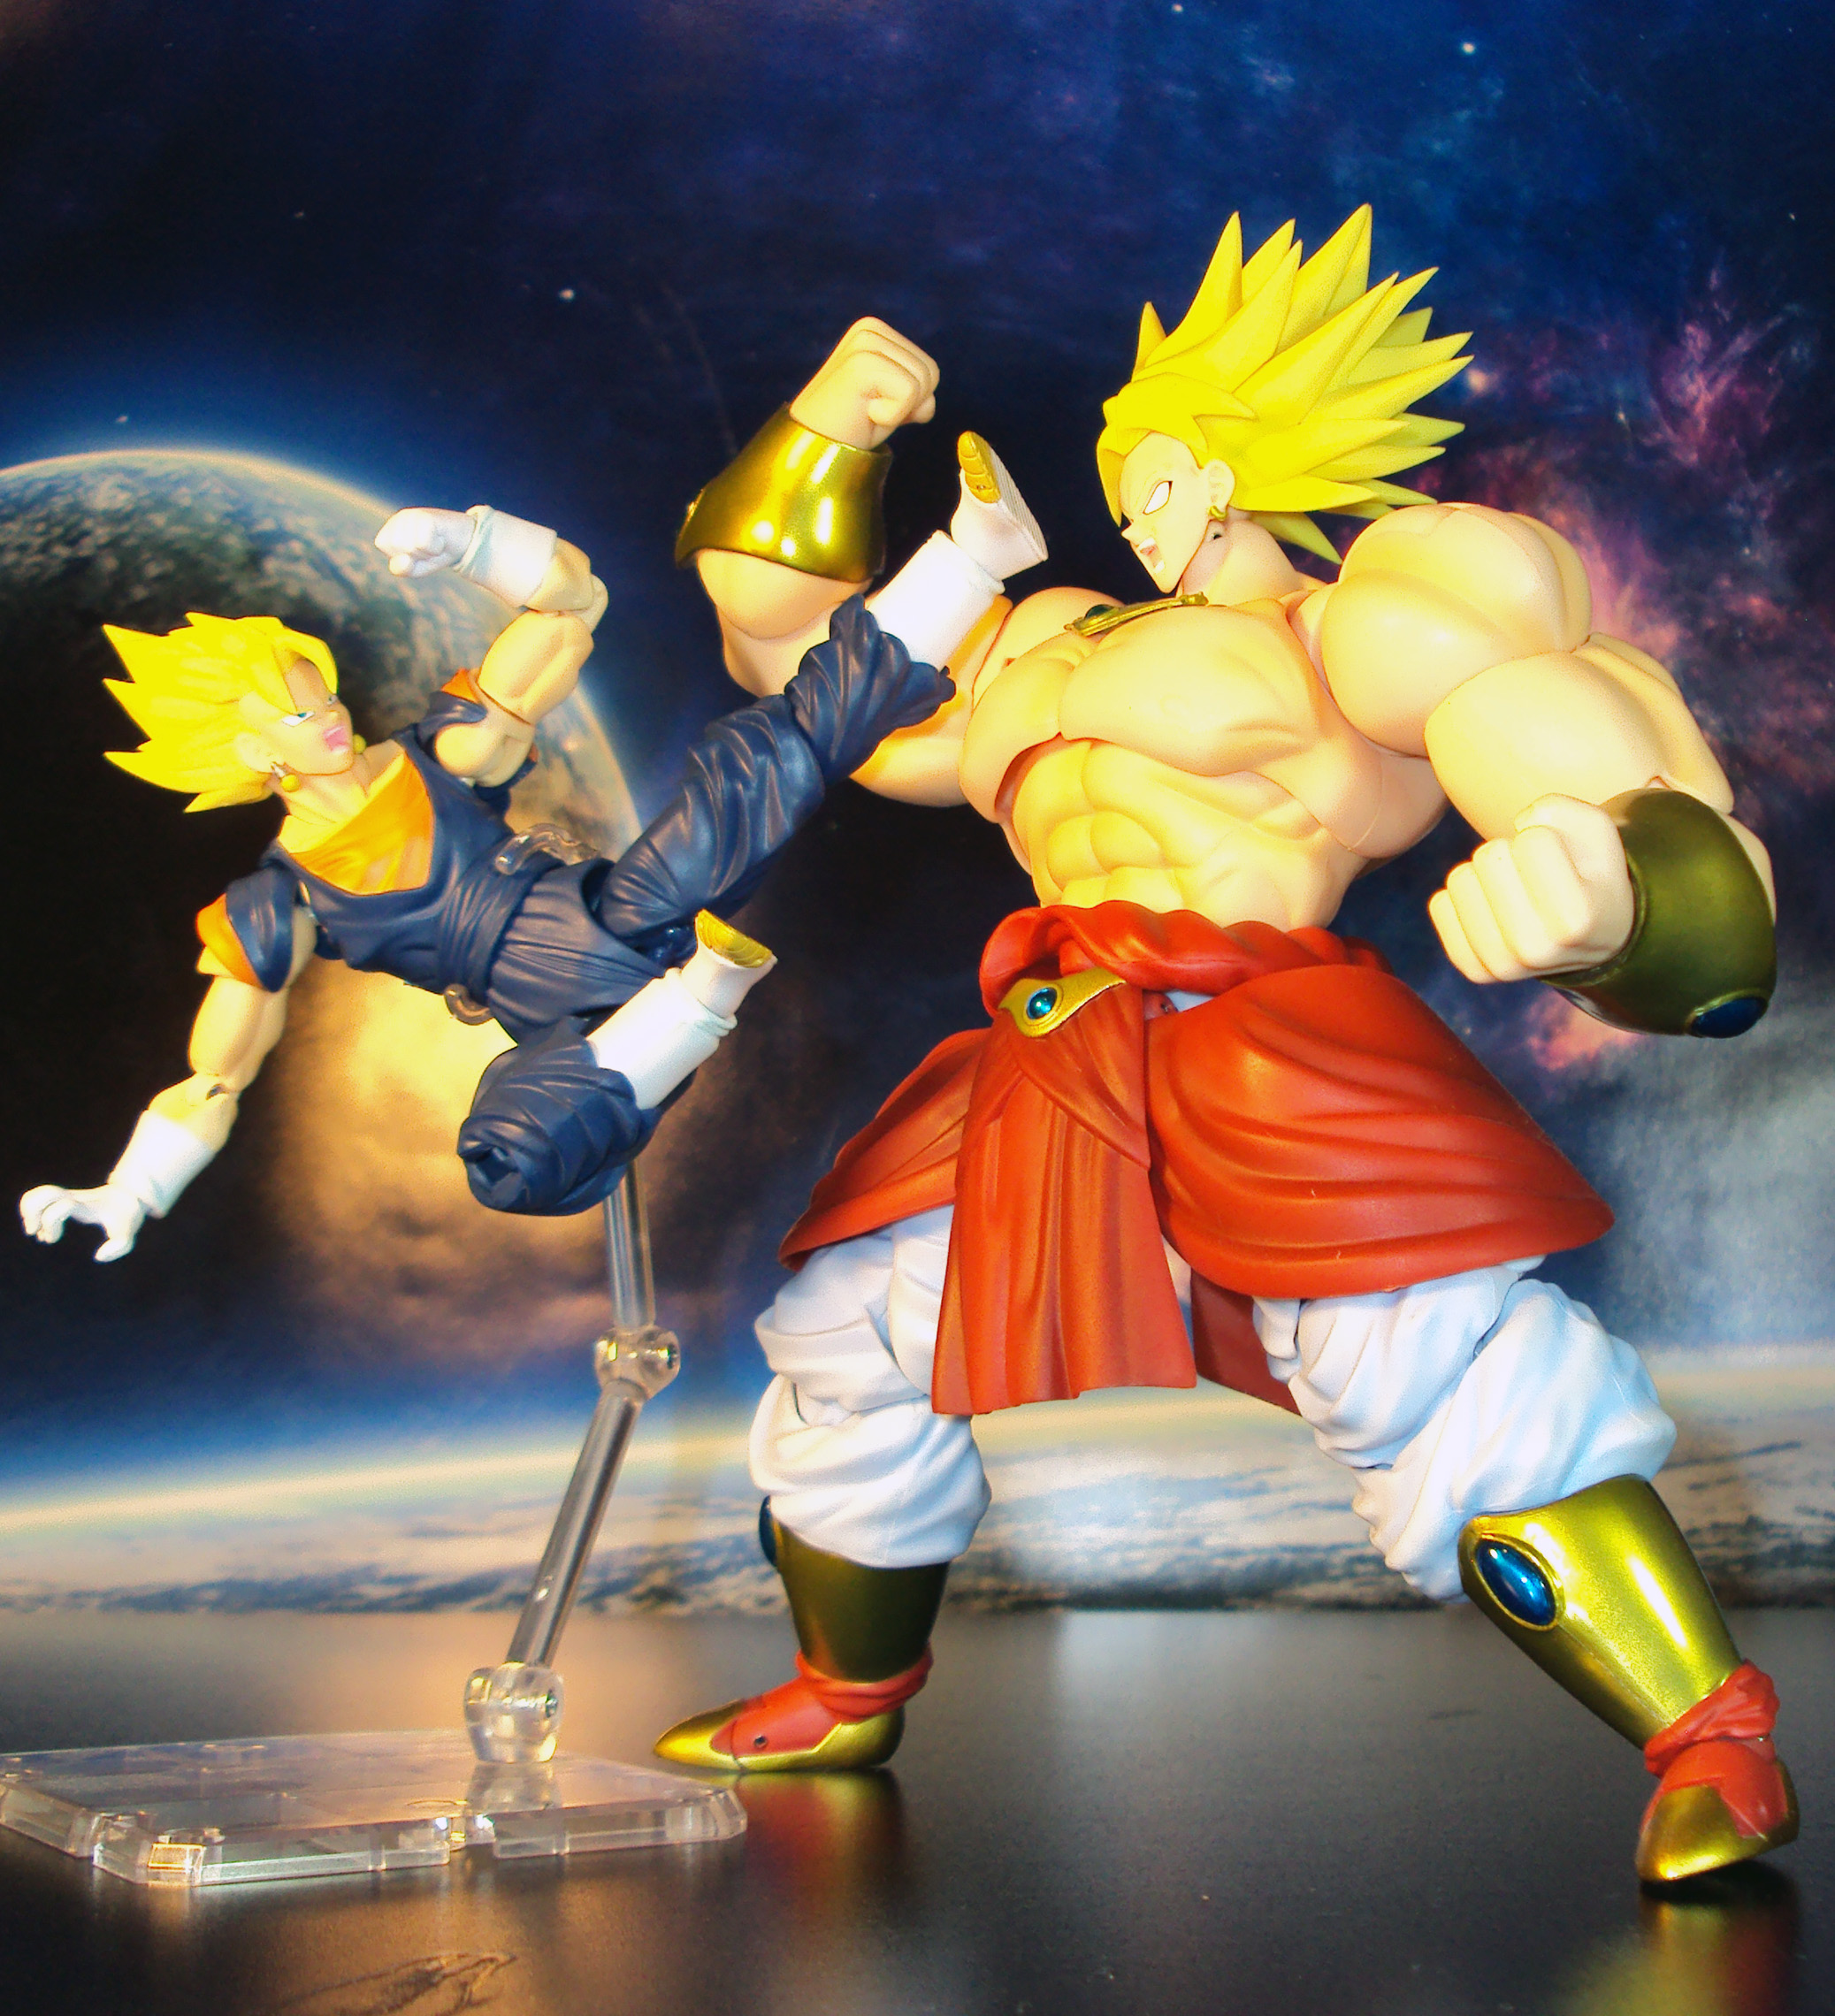 R374 bandai s h figuarts dragon ball z vegetto review welcome to hdtoytheater - Photo dragon ball z ...